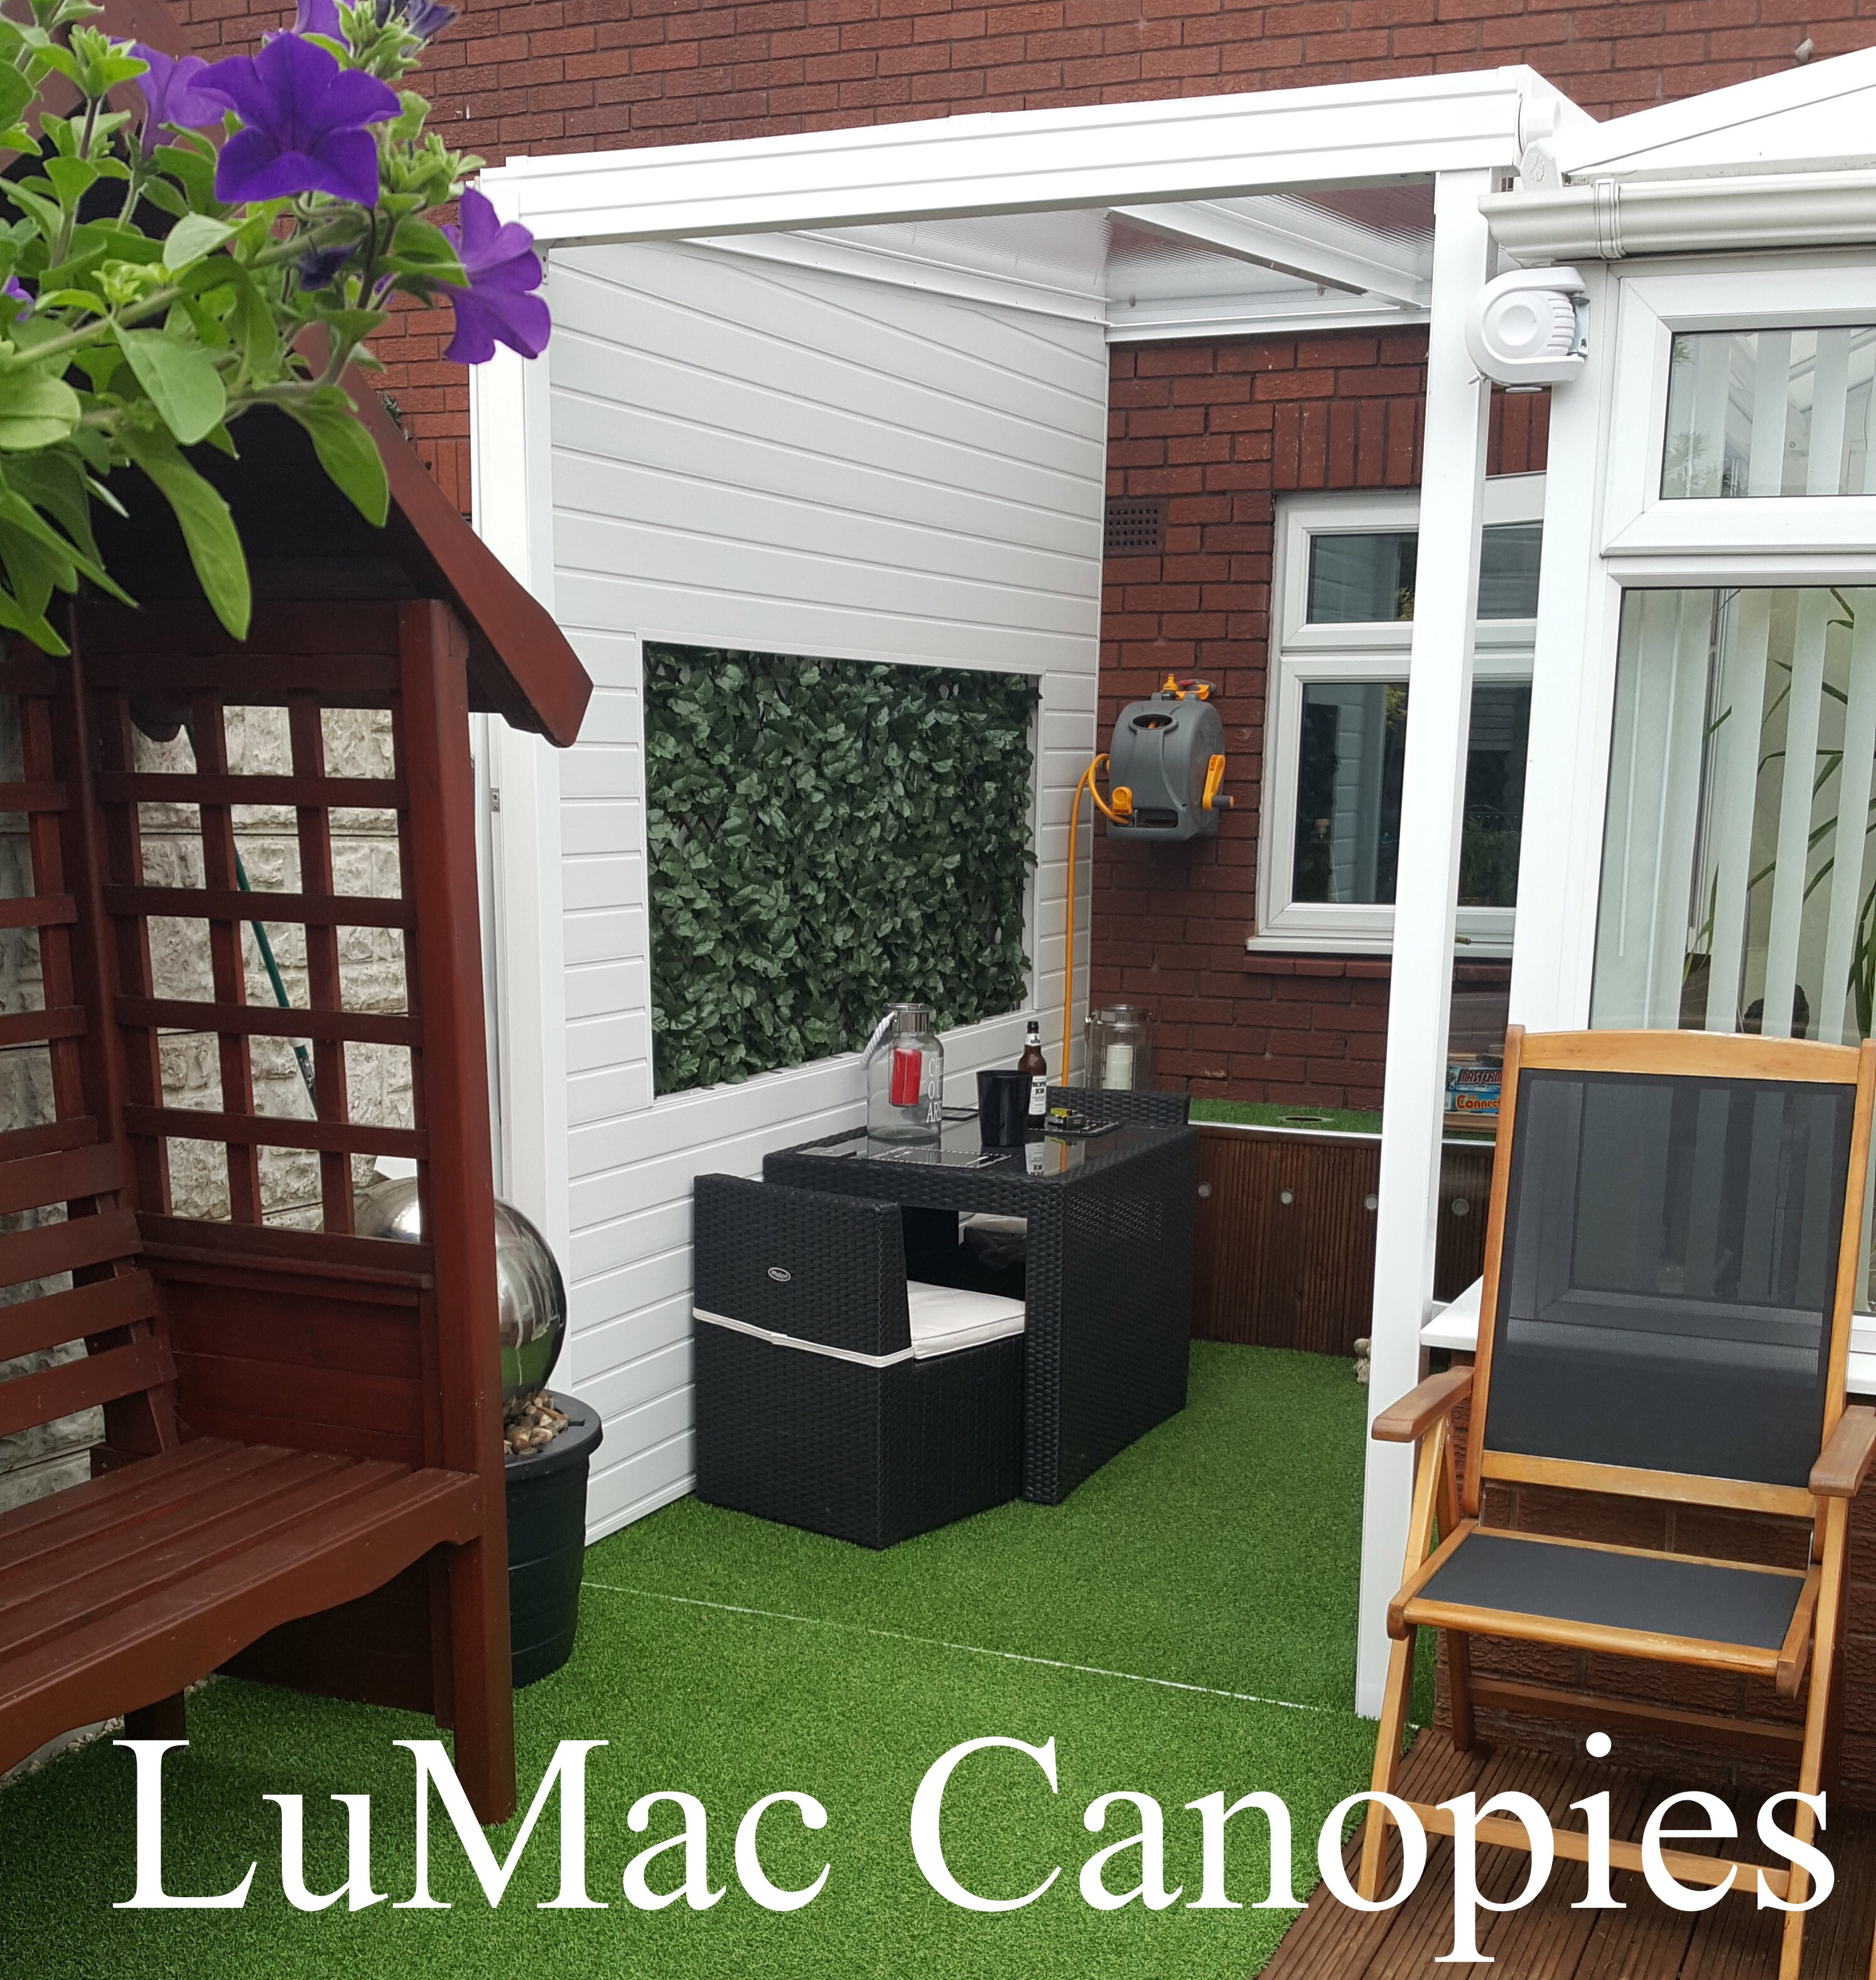 Add an extra room to my house lumac canopies for Add a room to my house